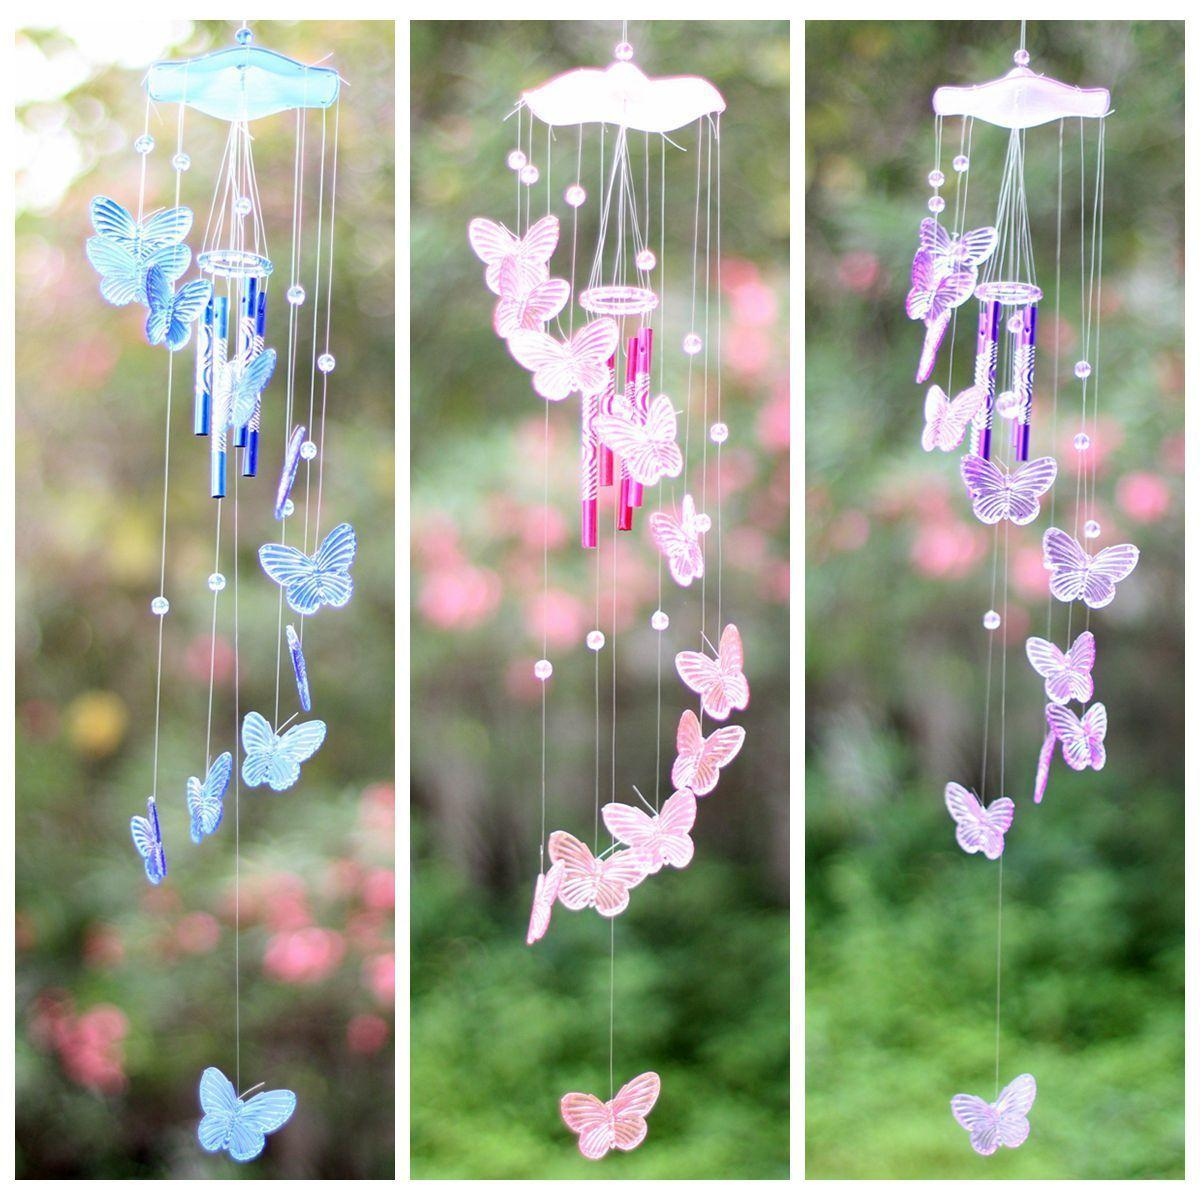 Purple Crystal Butterfly Wind Chime Bell Ornament Yard Hanging Decor Art